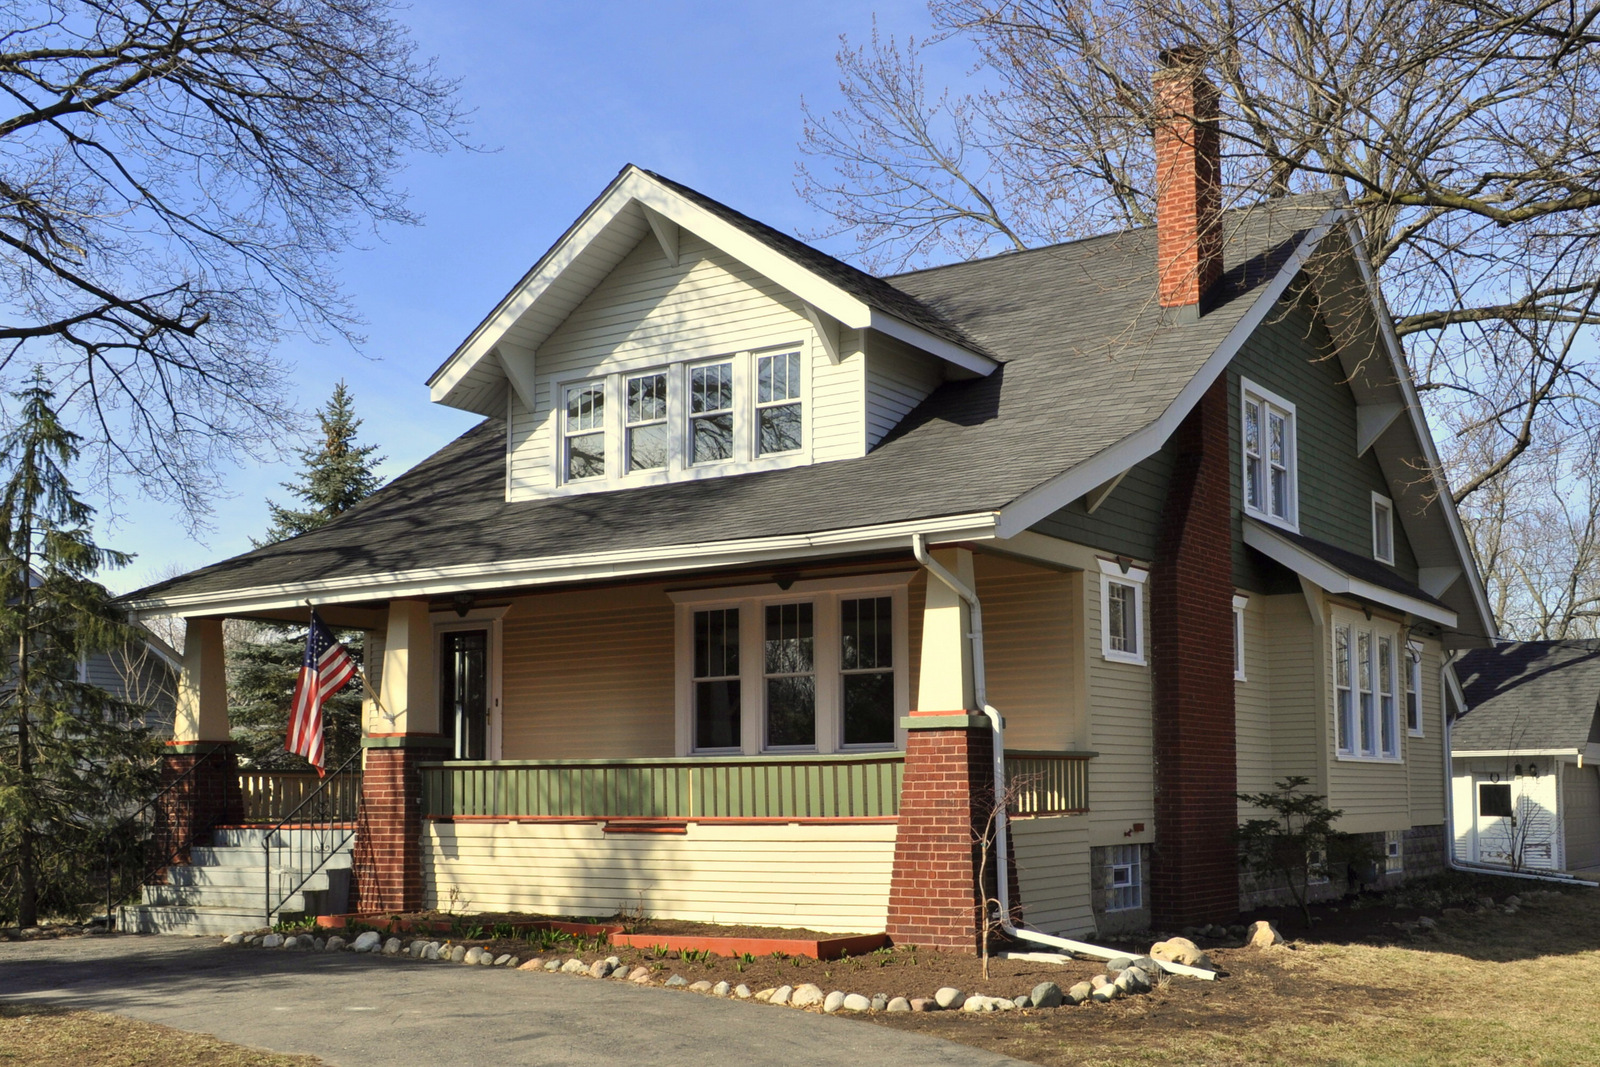 New Listing Pristine Craftsman Home In Plymouth Mi Bake